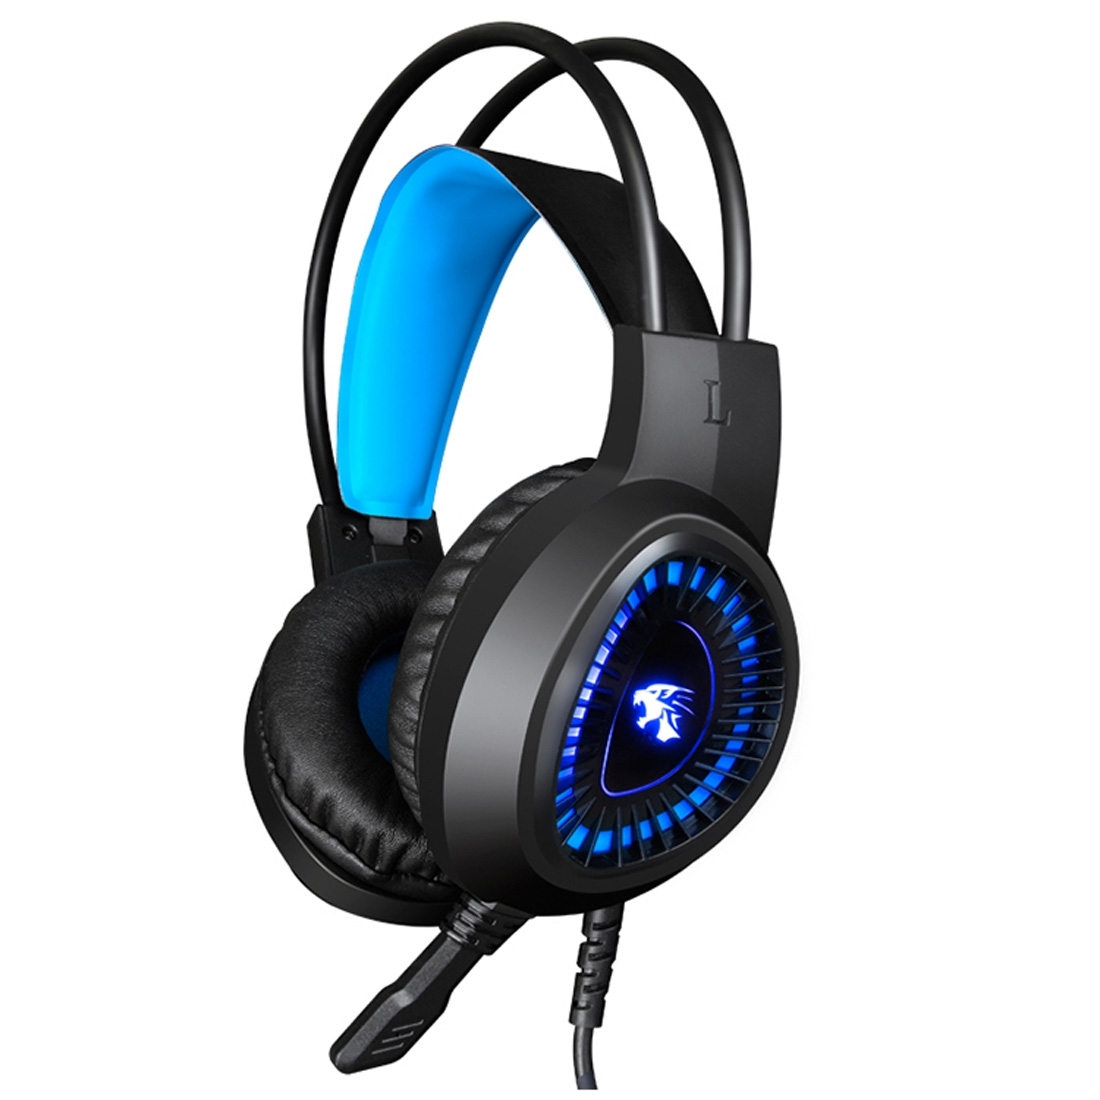 HAMTOD <strong>V1000</strong> New PC Wired Gamer Headphones With Light Gaming Headset PS4 (Blue)